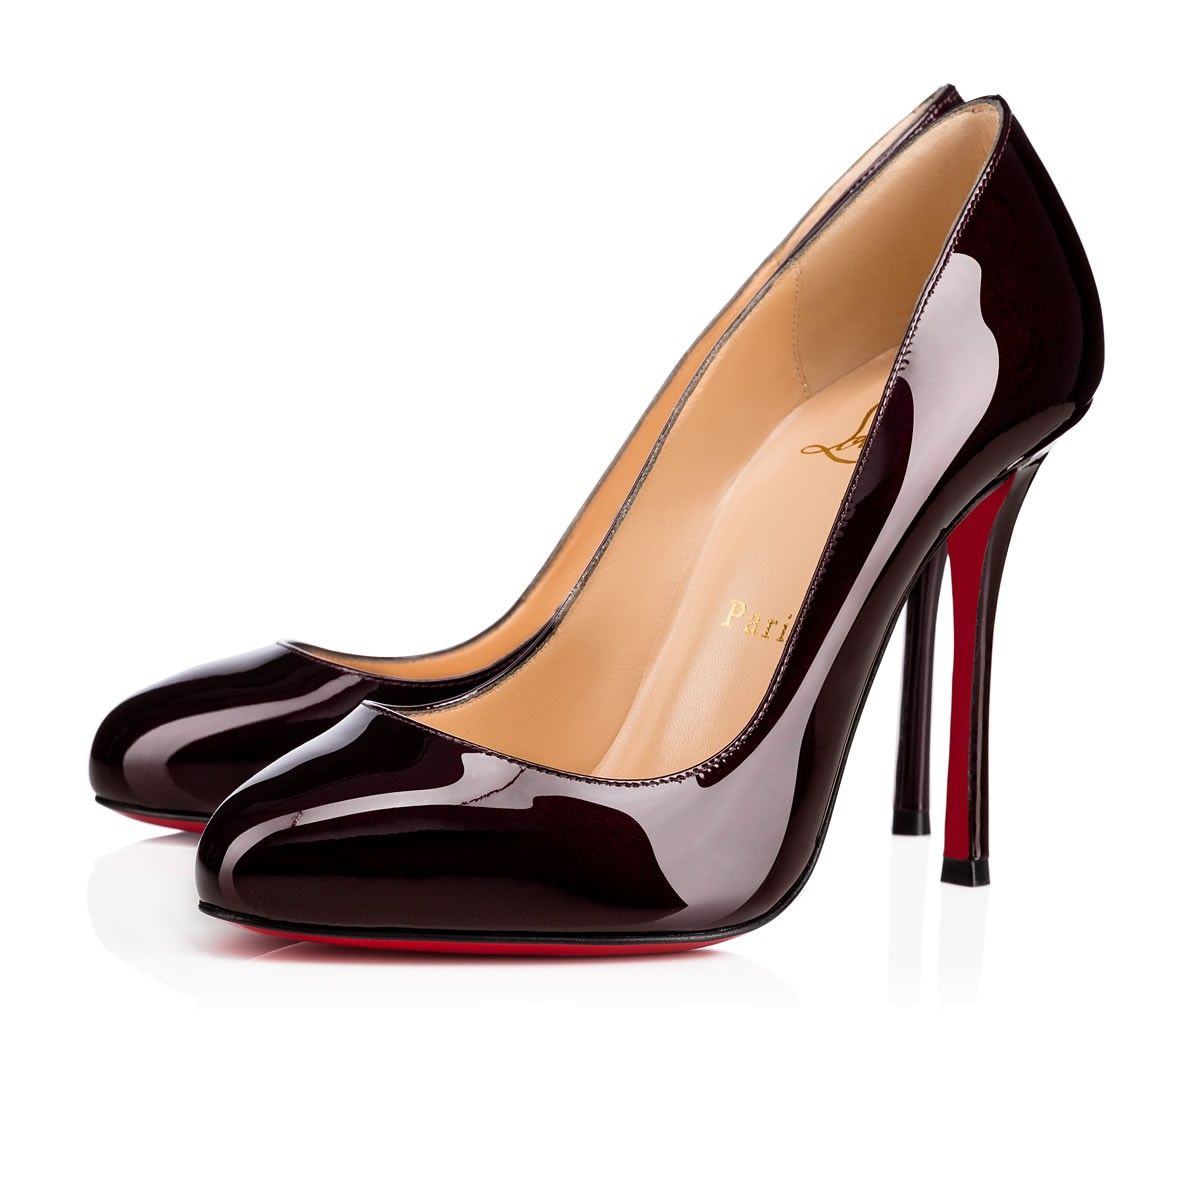 9fa940cb08f2 Christian Louboutin United States Official Online Boutique - Merci Allen 100  Merlot Patent Leather available online. Discover more Women Shoes by  Christian ...